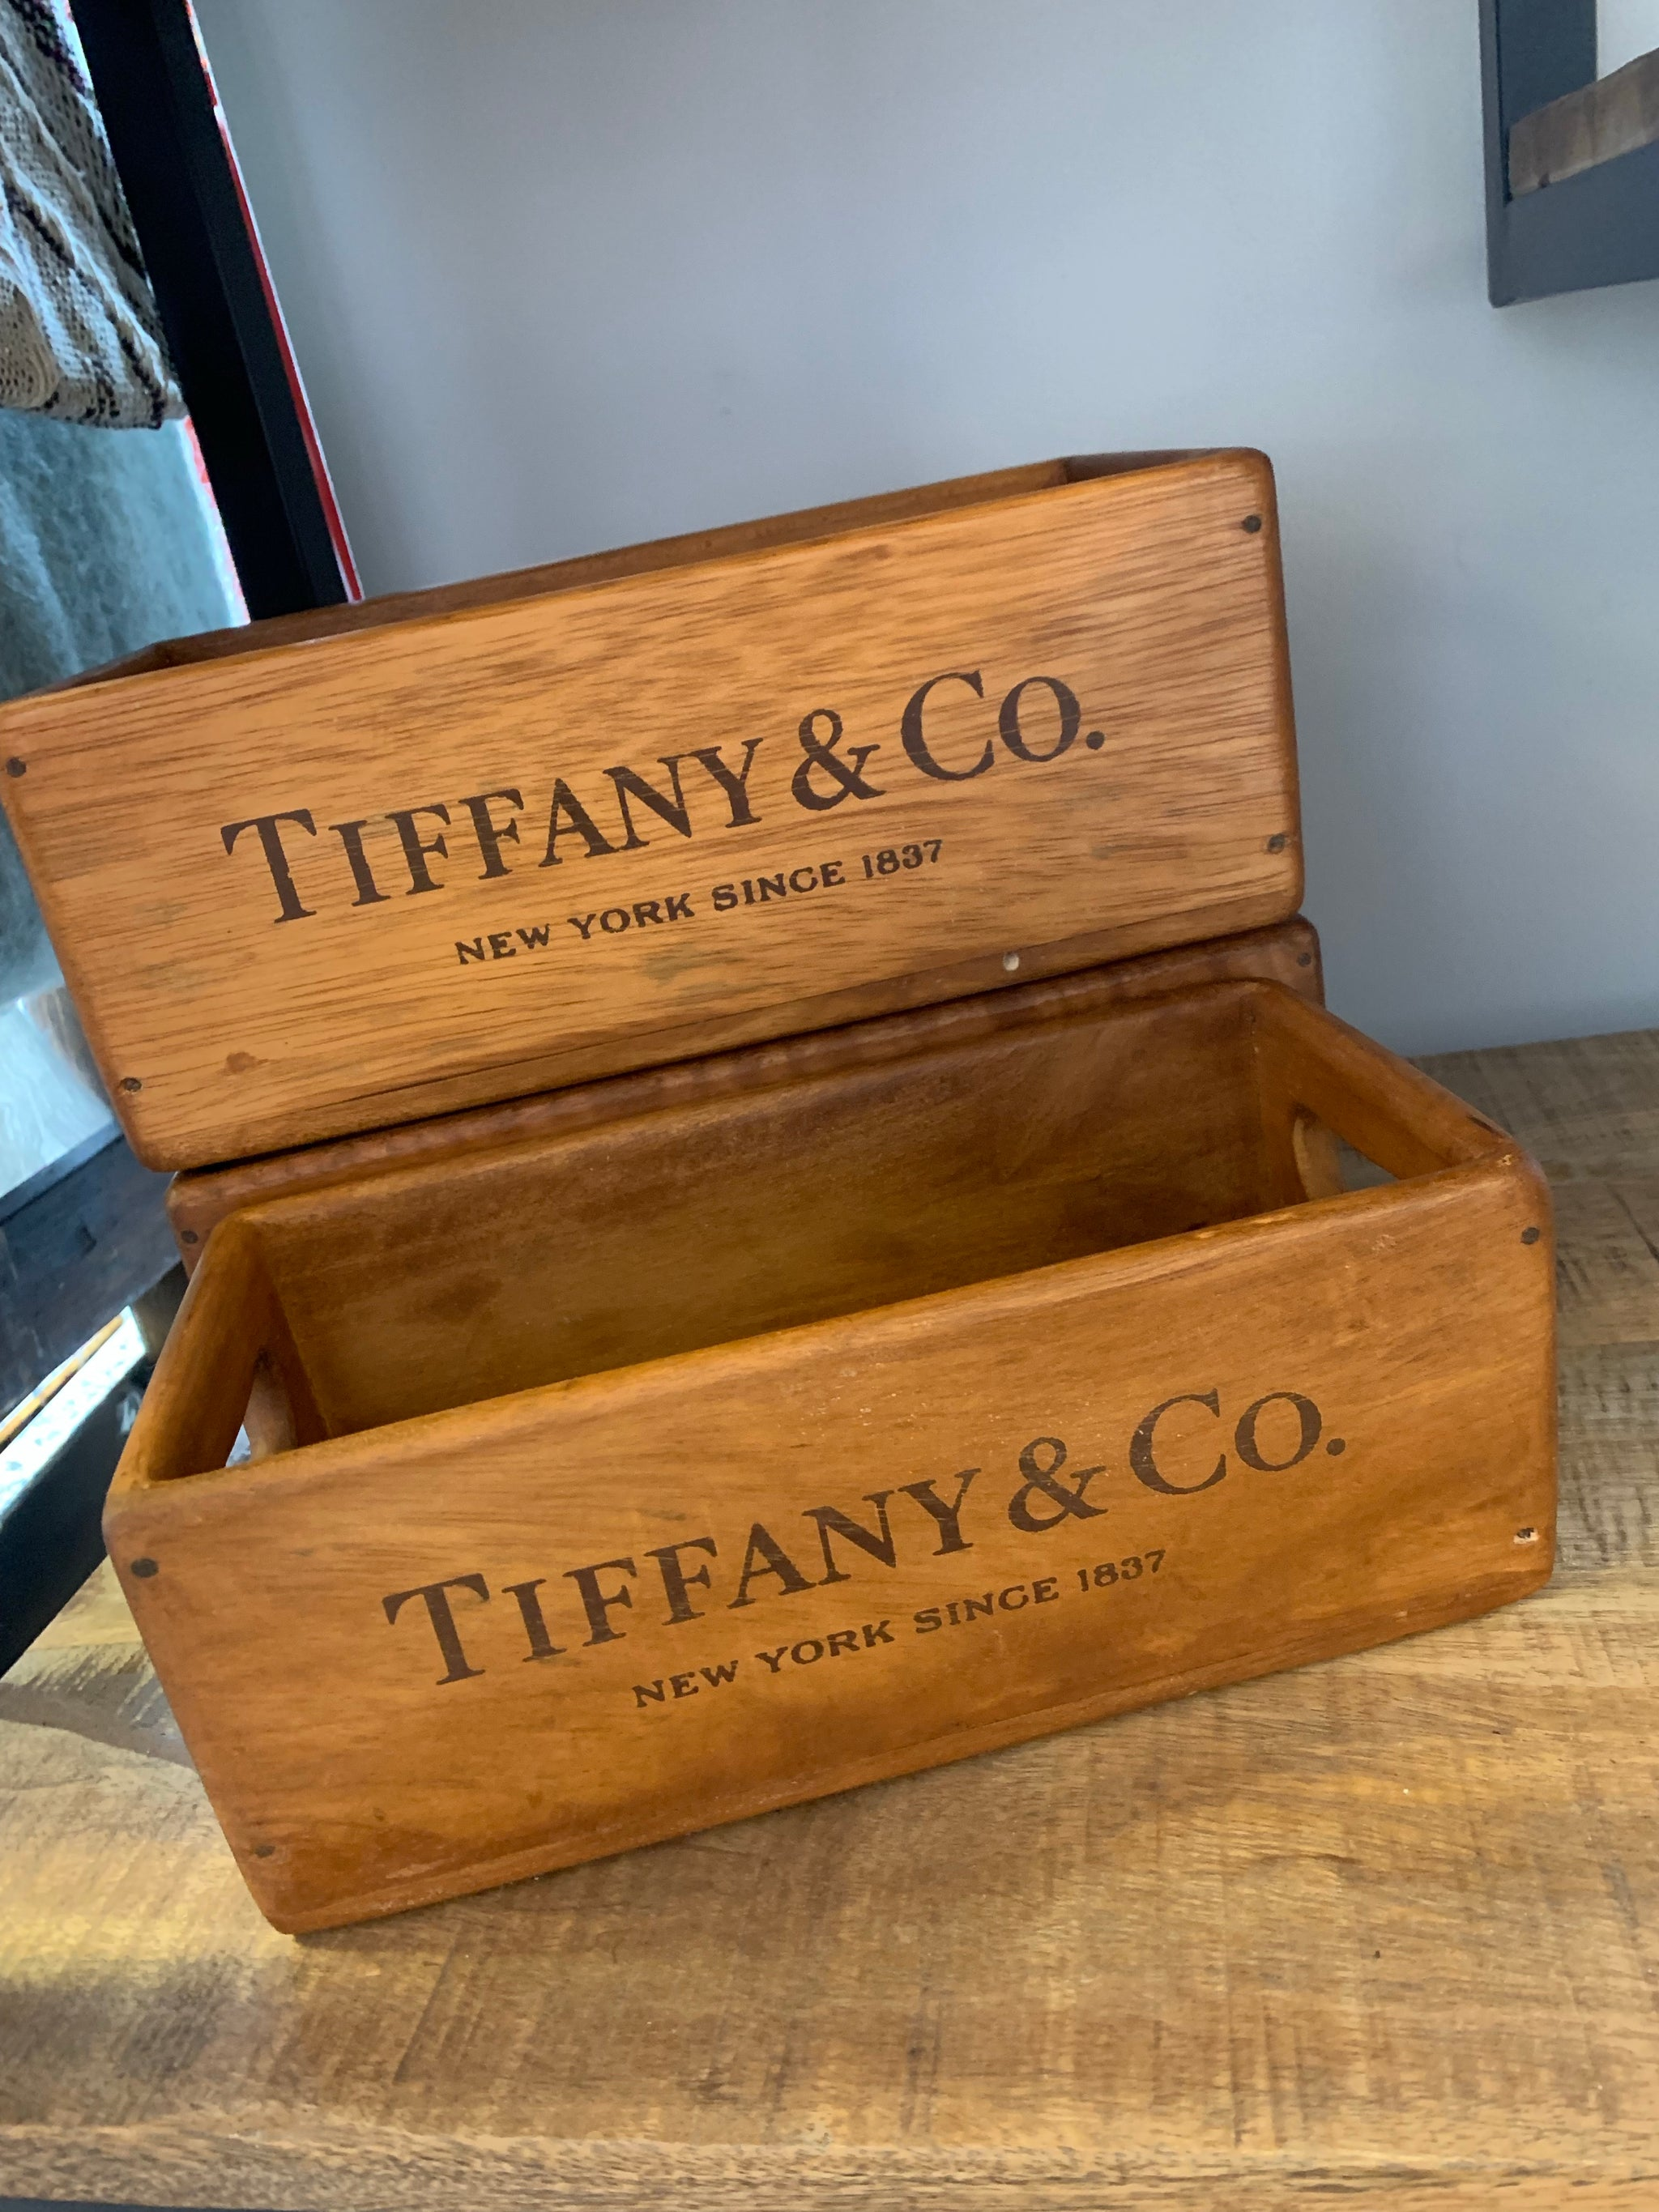 Tiffany & Co Crates